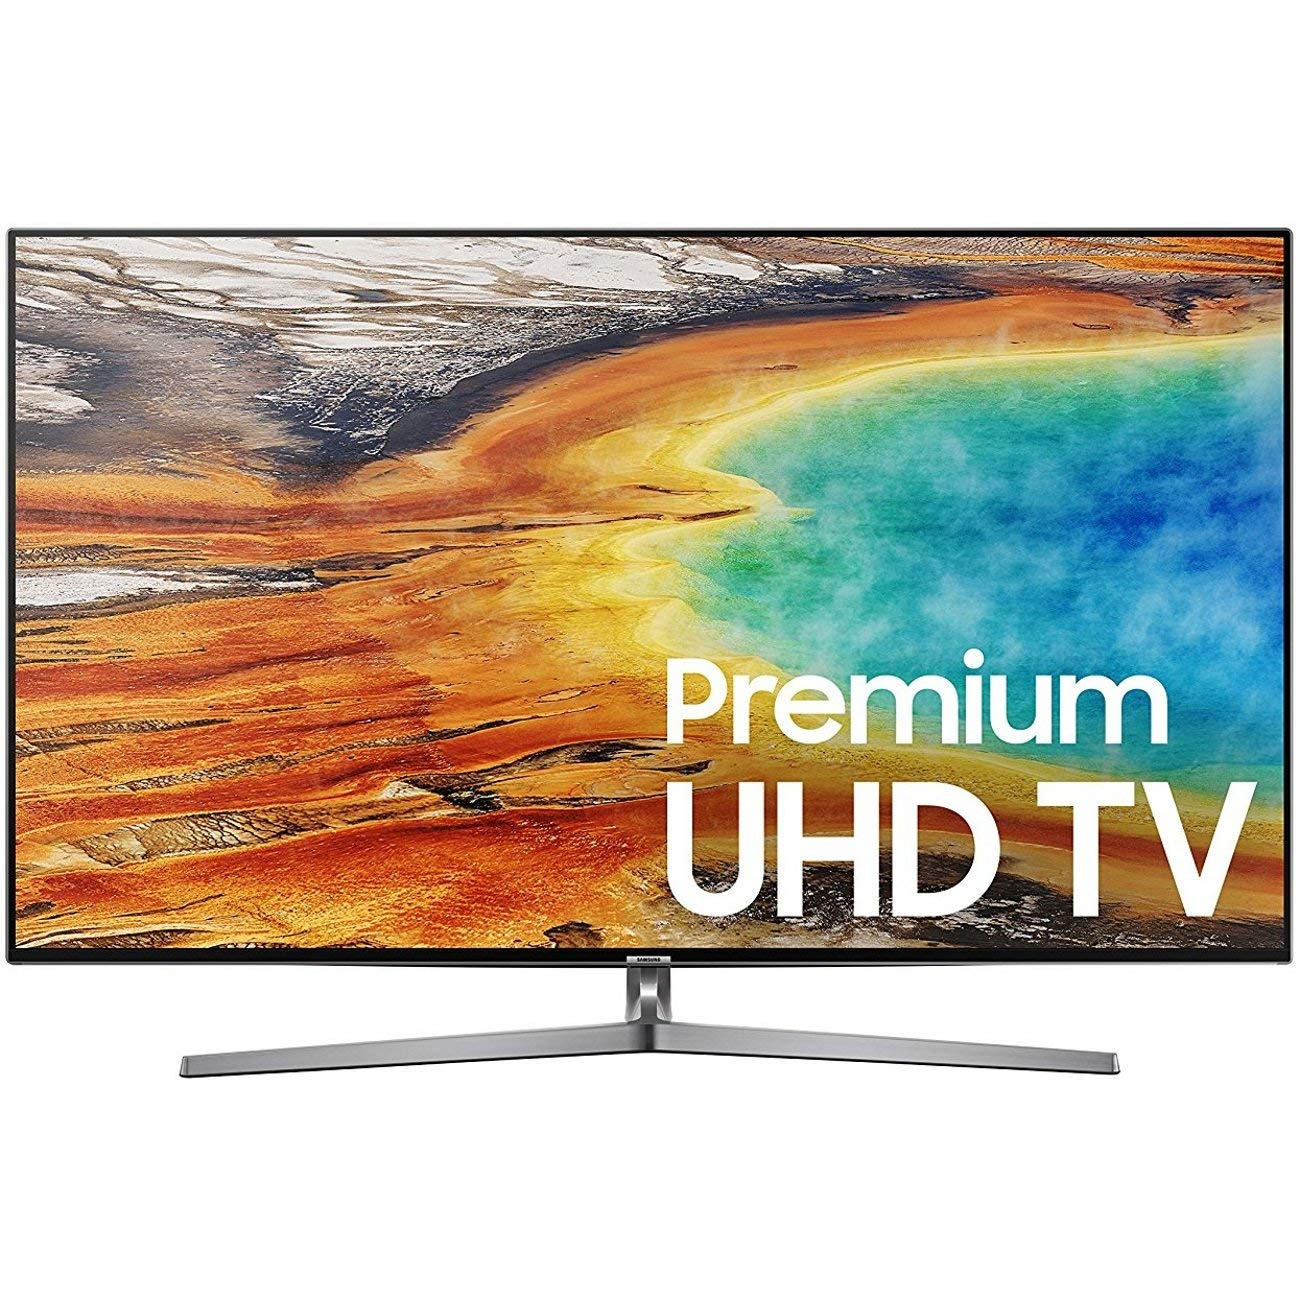 An image related to Samsung UN55MU9000FXZA 55-Inch HDR Flat Screen 4K LED TV with Samsung Motion Rate 240